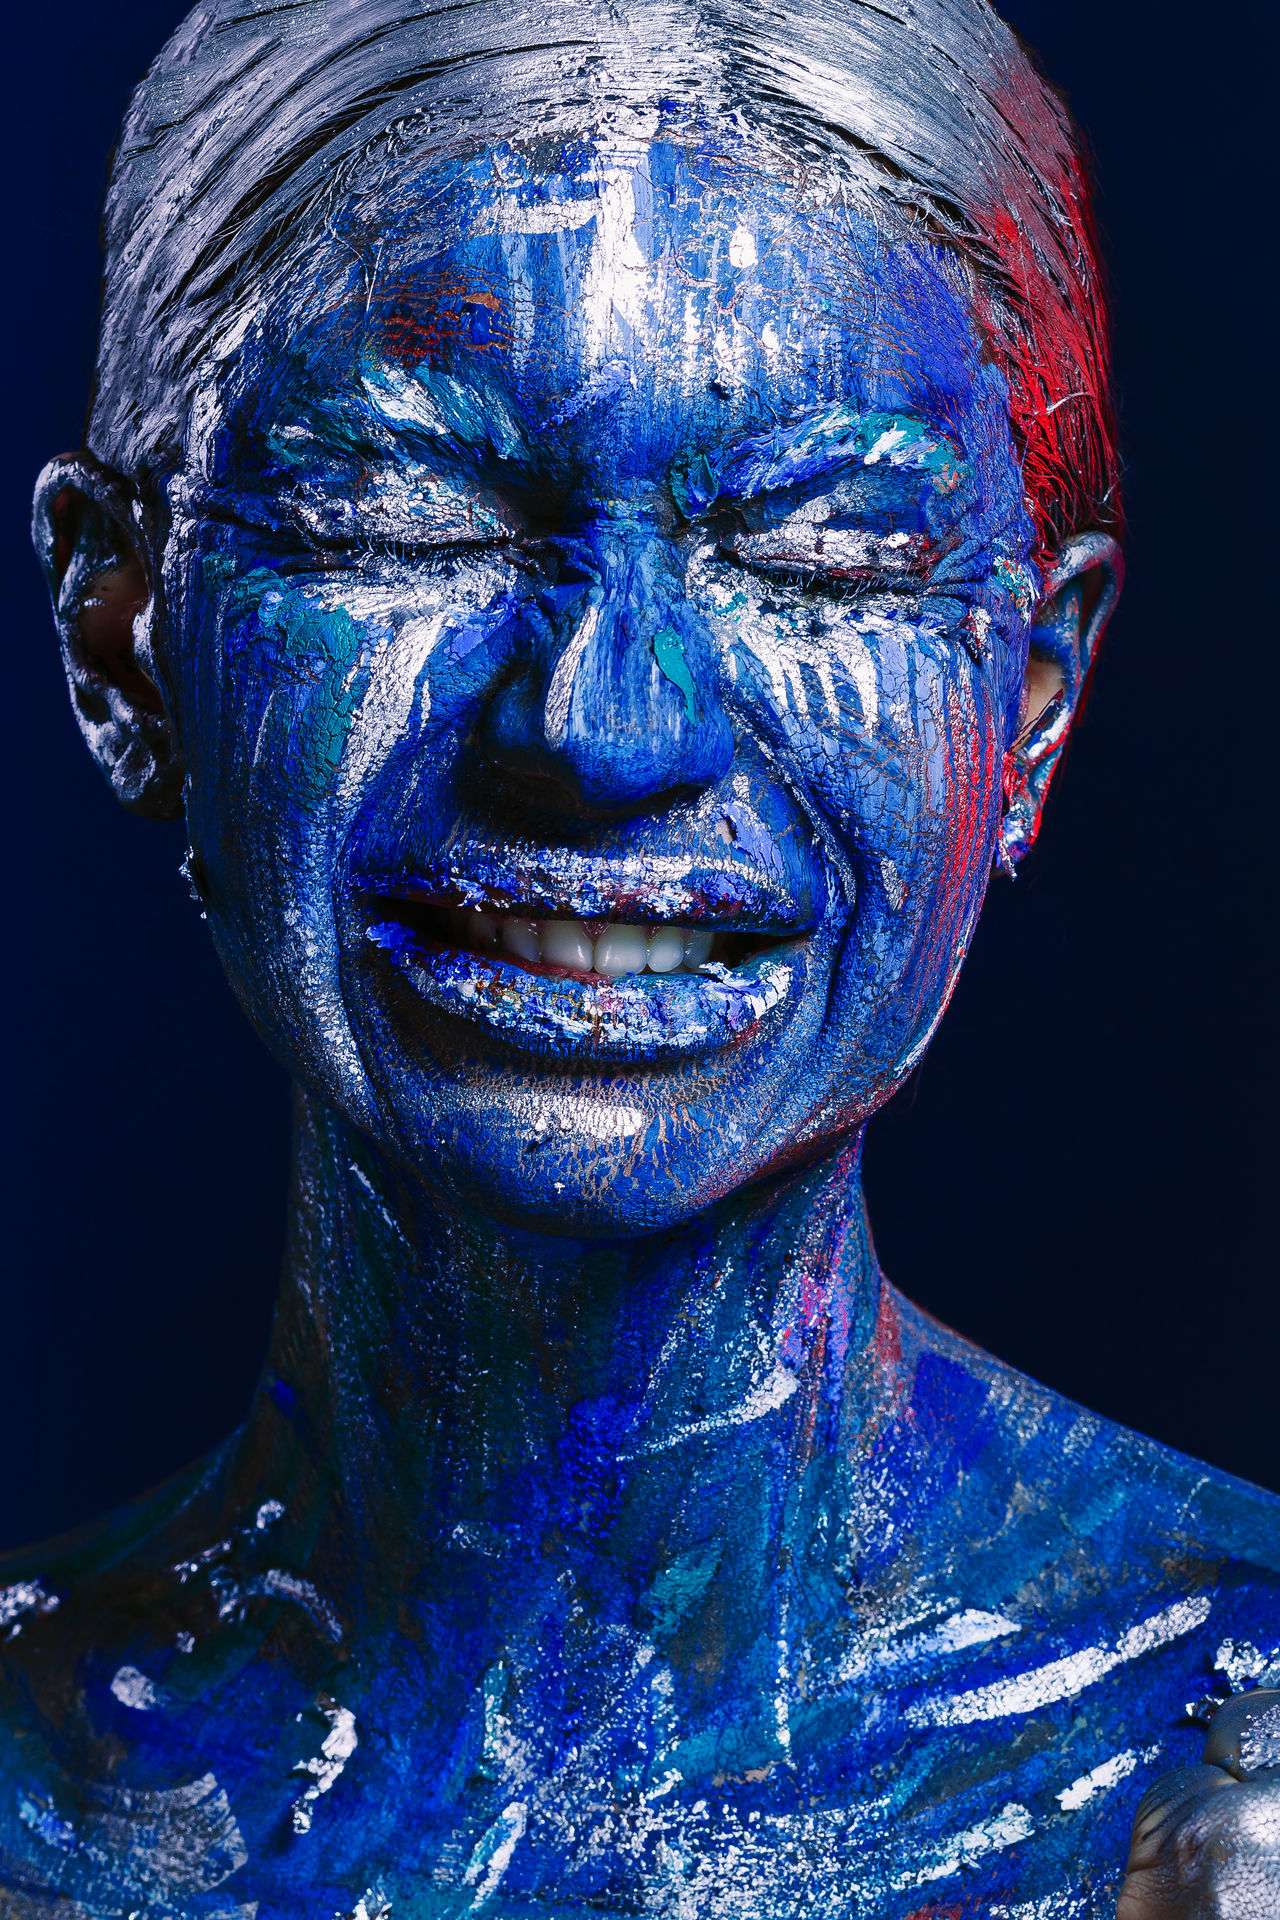 Beauty Beauty Product Bizarre Blue Body Paint Close Up Close-up Uniqueness Face Paint Faces Of EyeEm Fantasy Fantasy Dreaming Fantasy Photography Fashion Futuristic Headshot Human Face Human Lips Make-up Multi Colored Multicolored Multicolors  Stage Make-up Studio Shot Technology